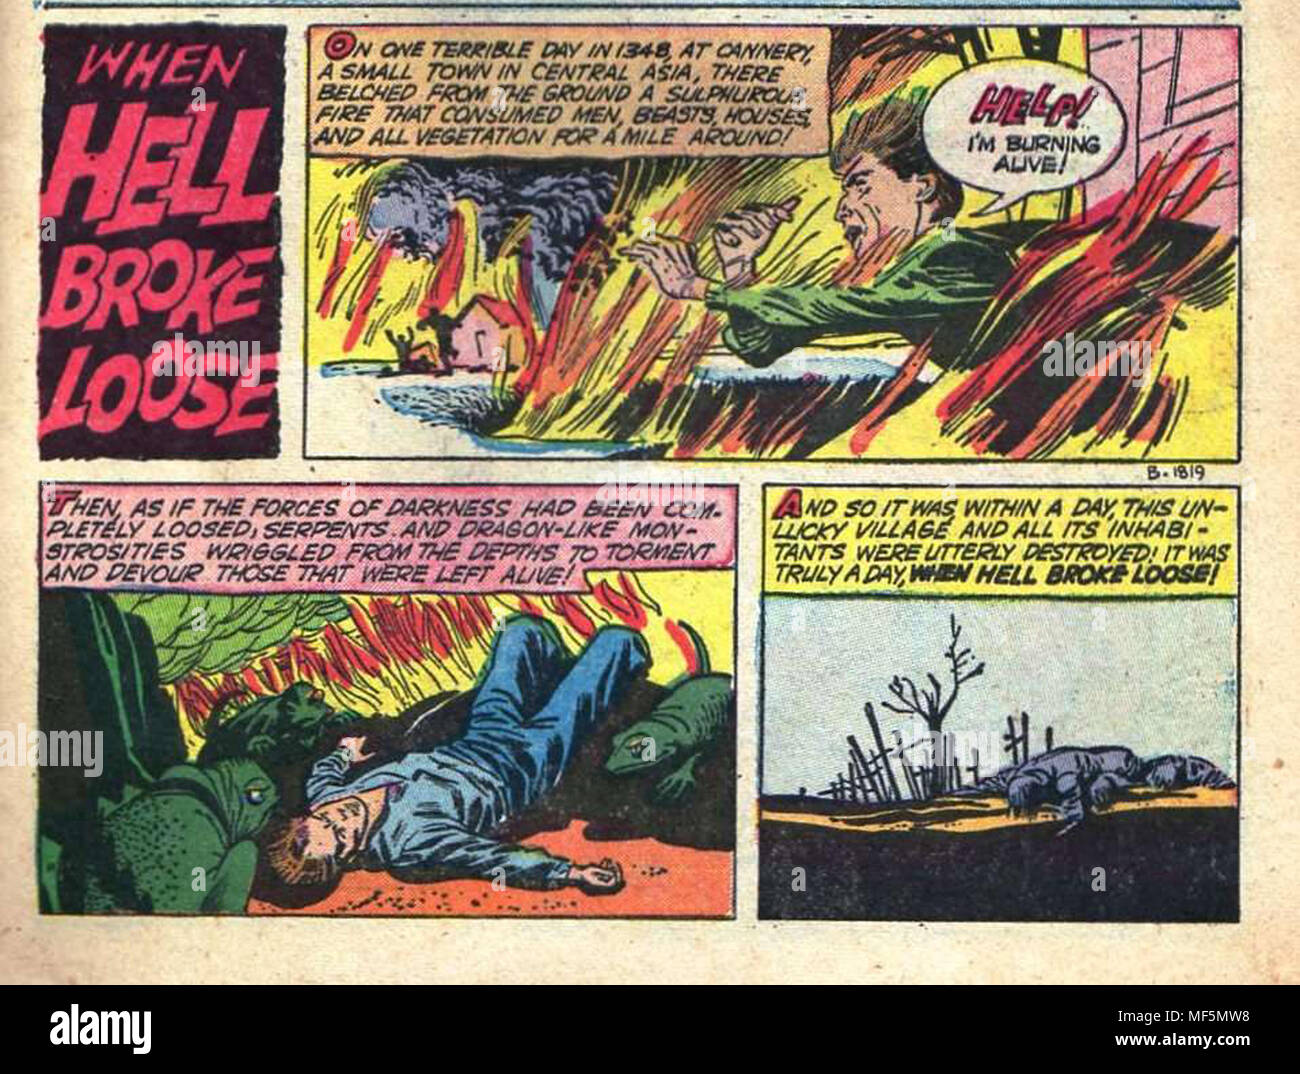 cool comic art panel with a horror theme taken from vintage comics